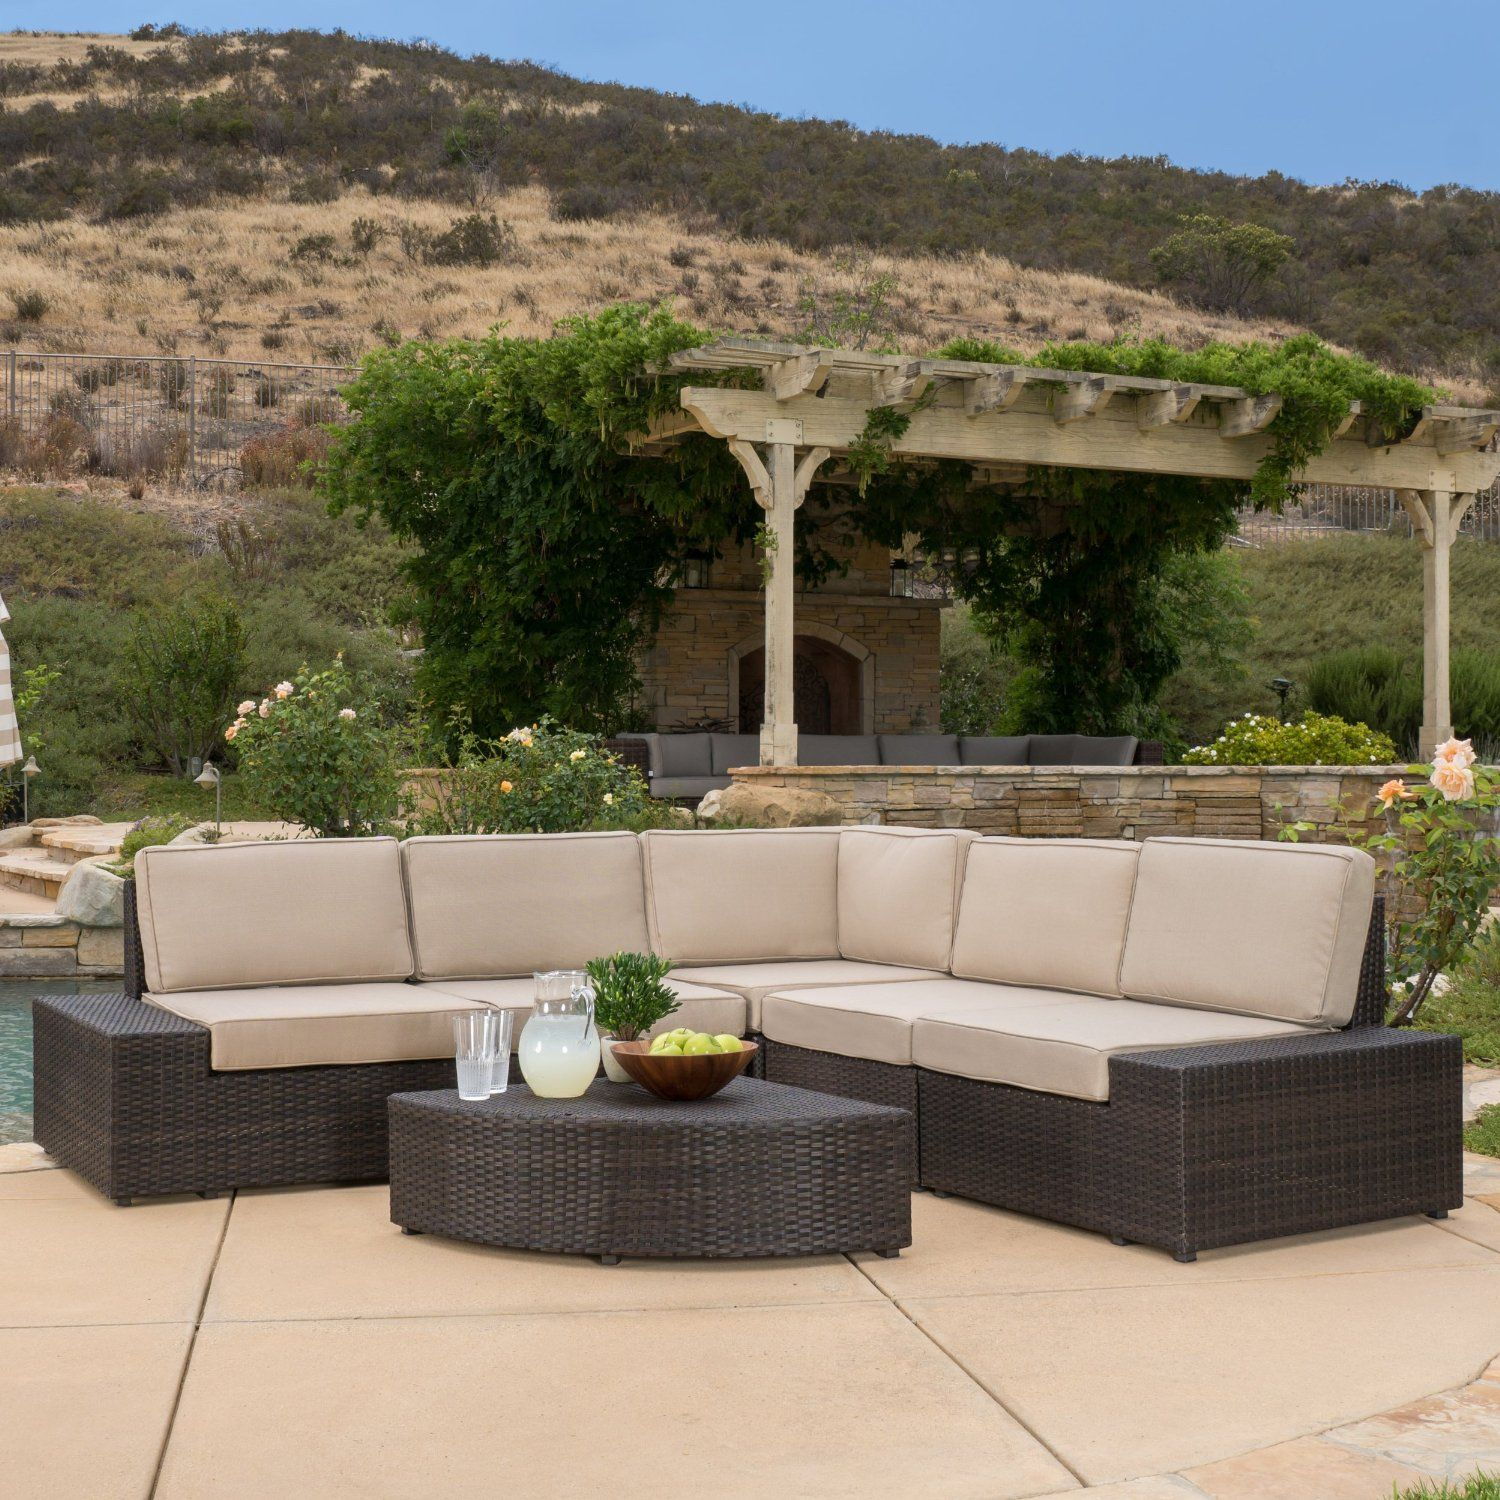 Reddington outdoor brown wicker sectional for Outdoor furniture wicker